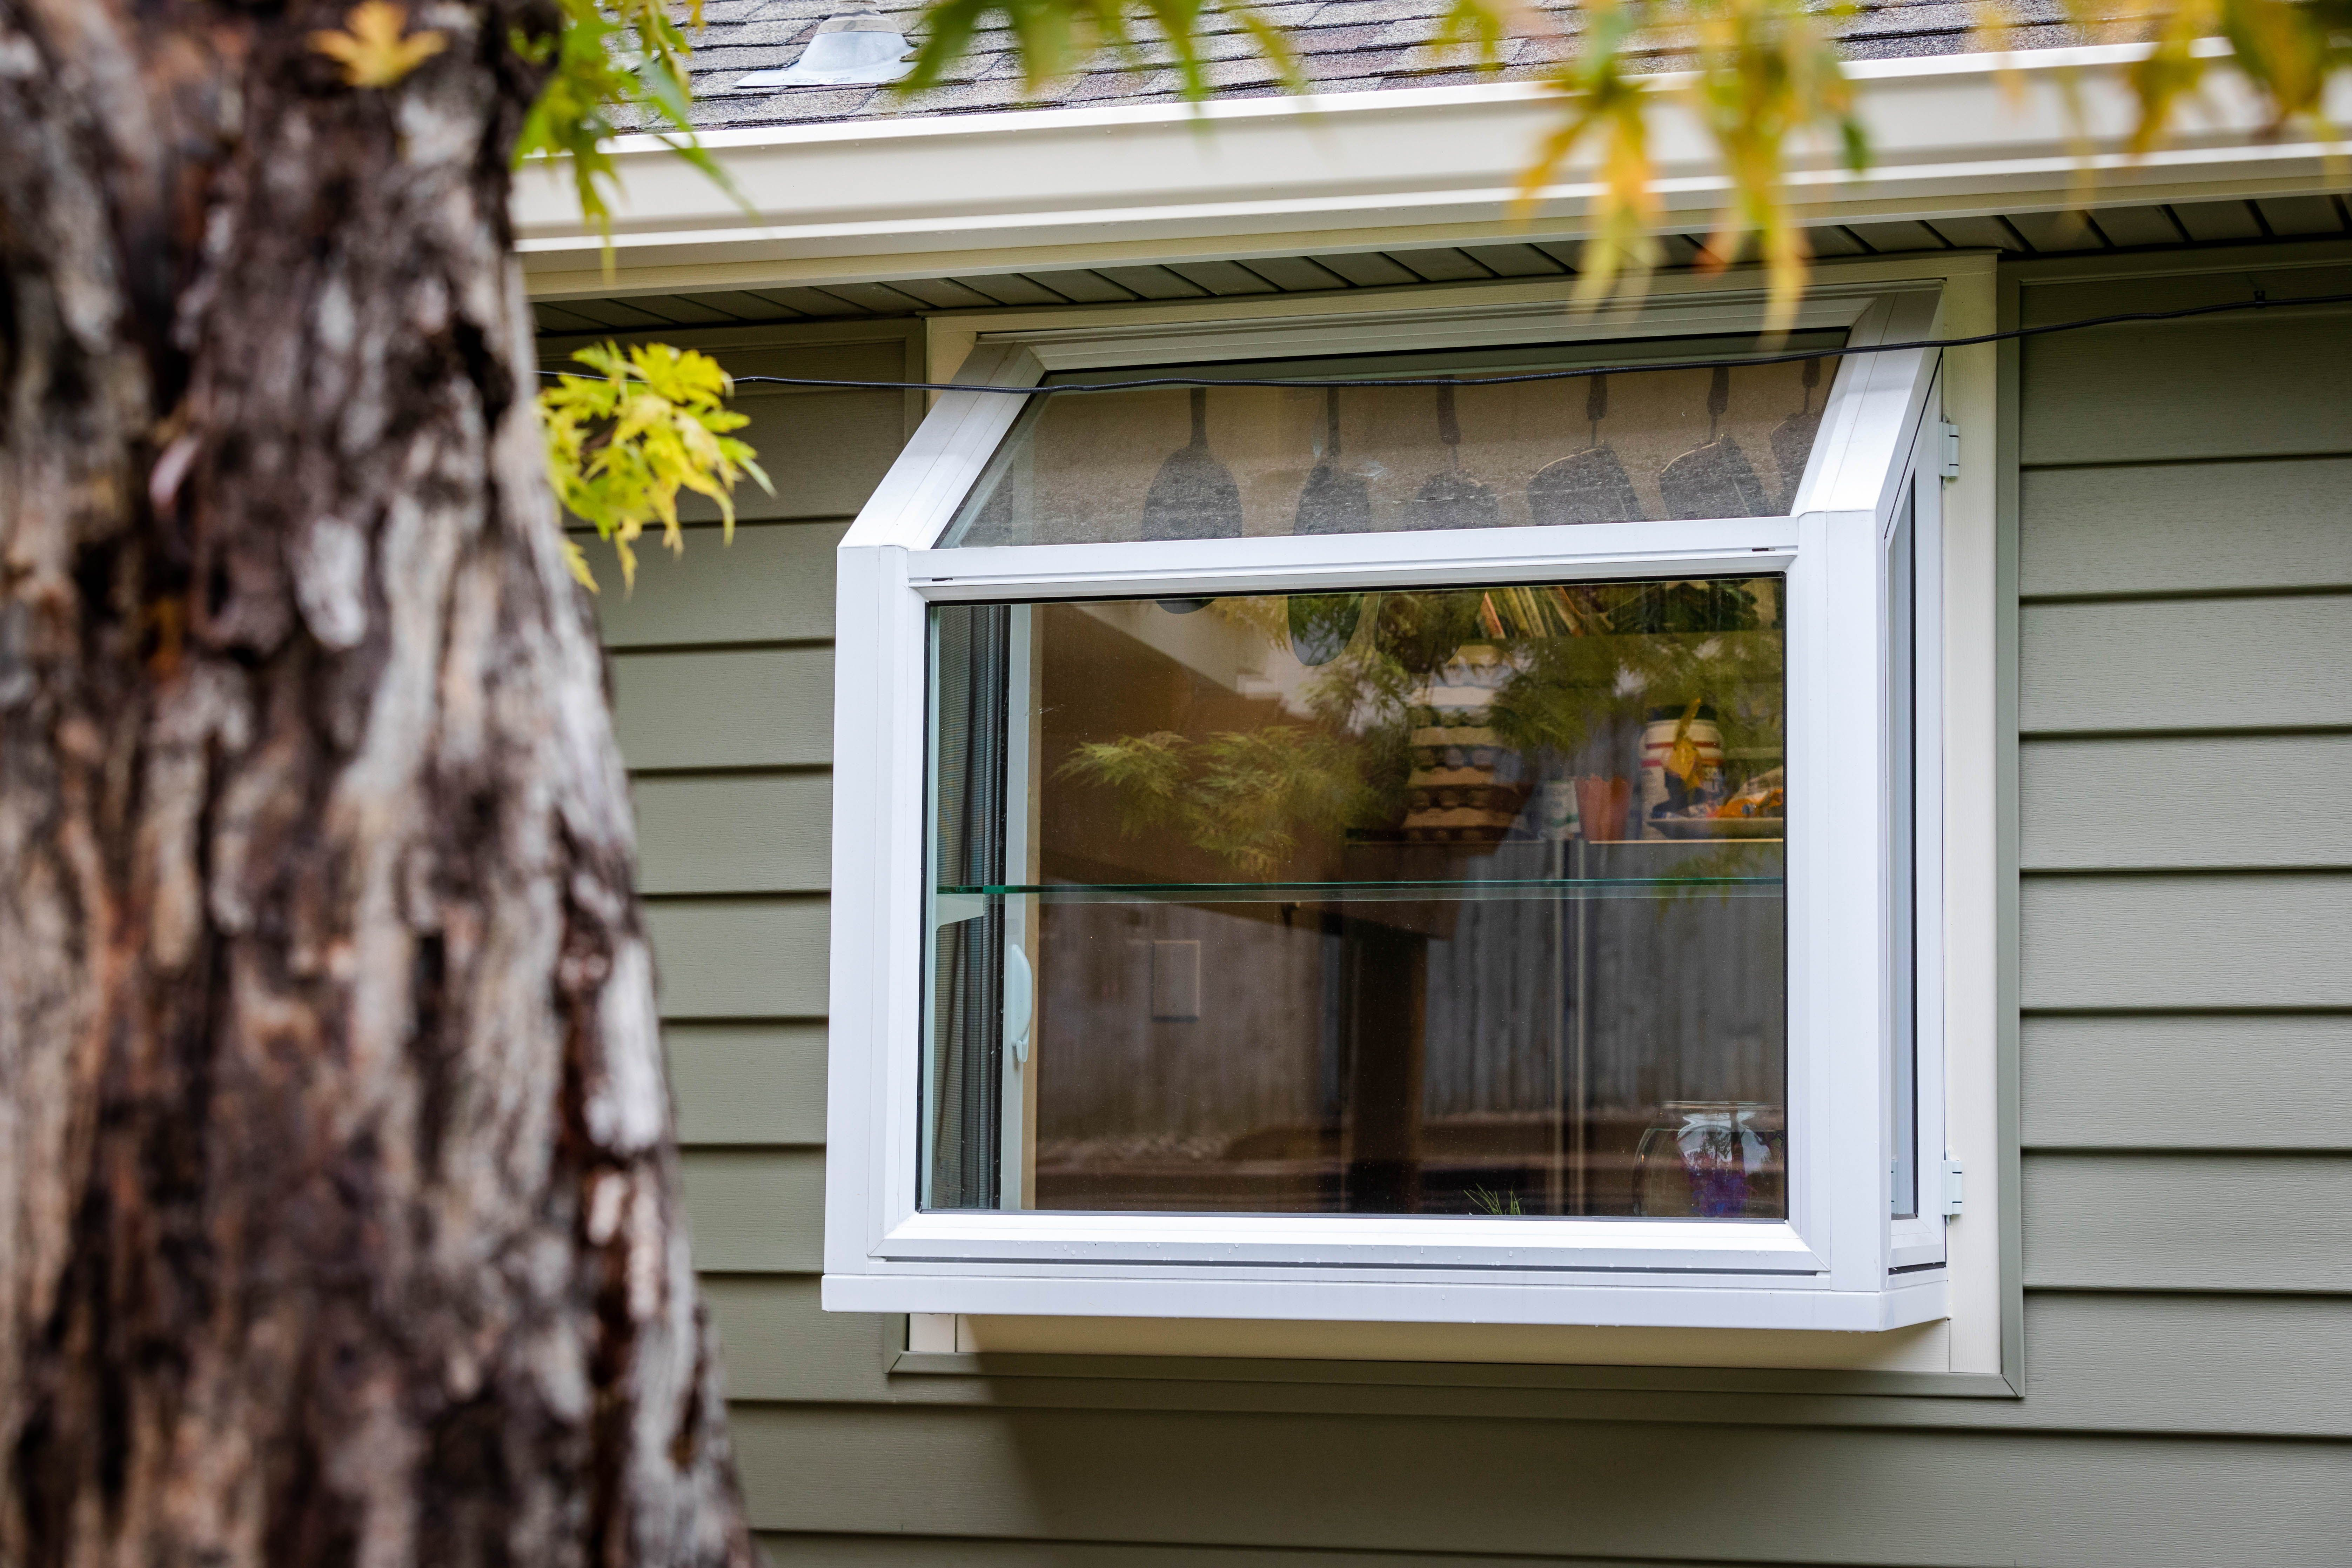 Garden Windows Are Perfect For Adding Your Unique Style To Your Home Windows Garden Home Style Windows Home Improvement Contractors Garden Windows